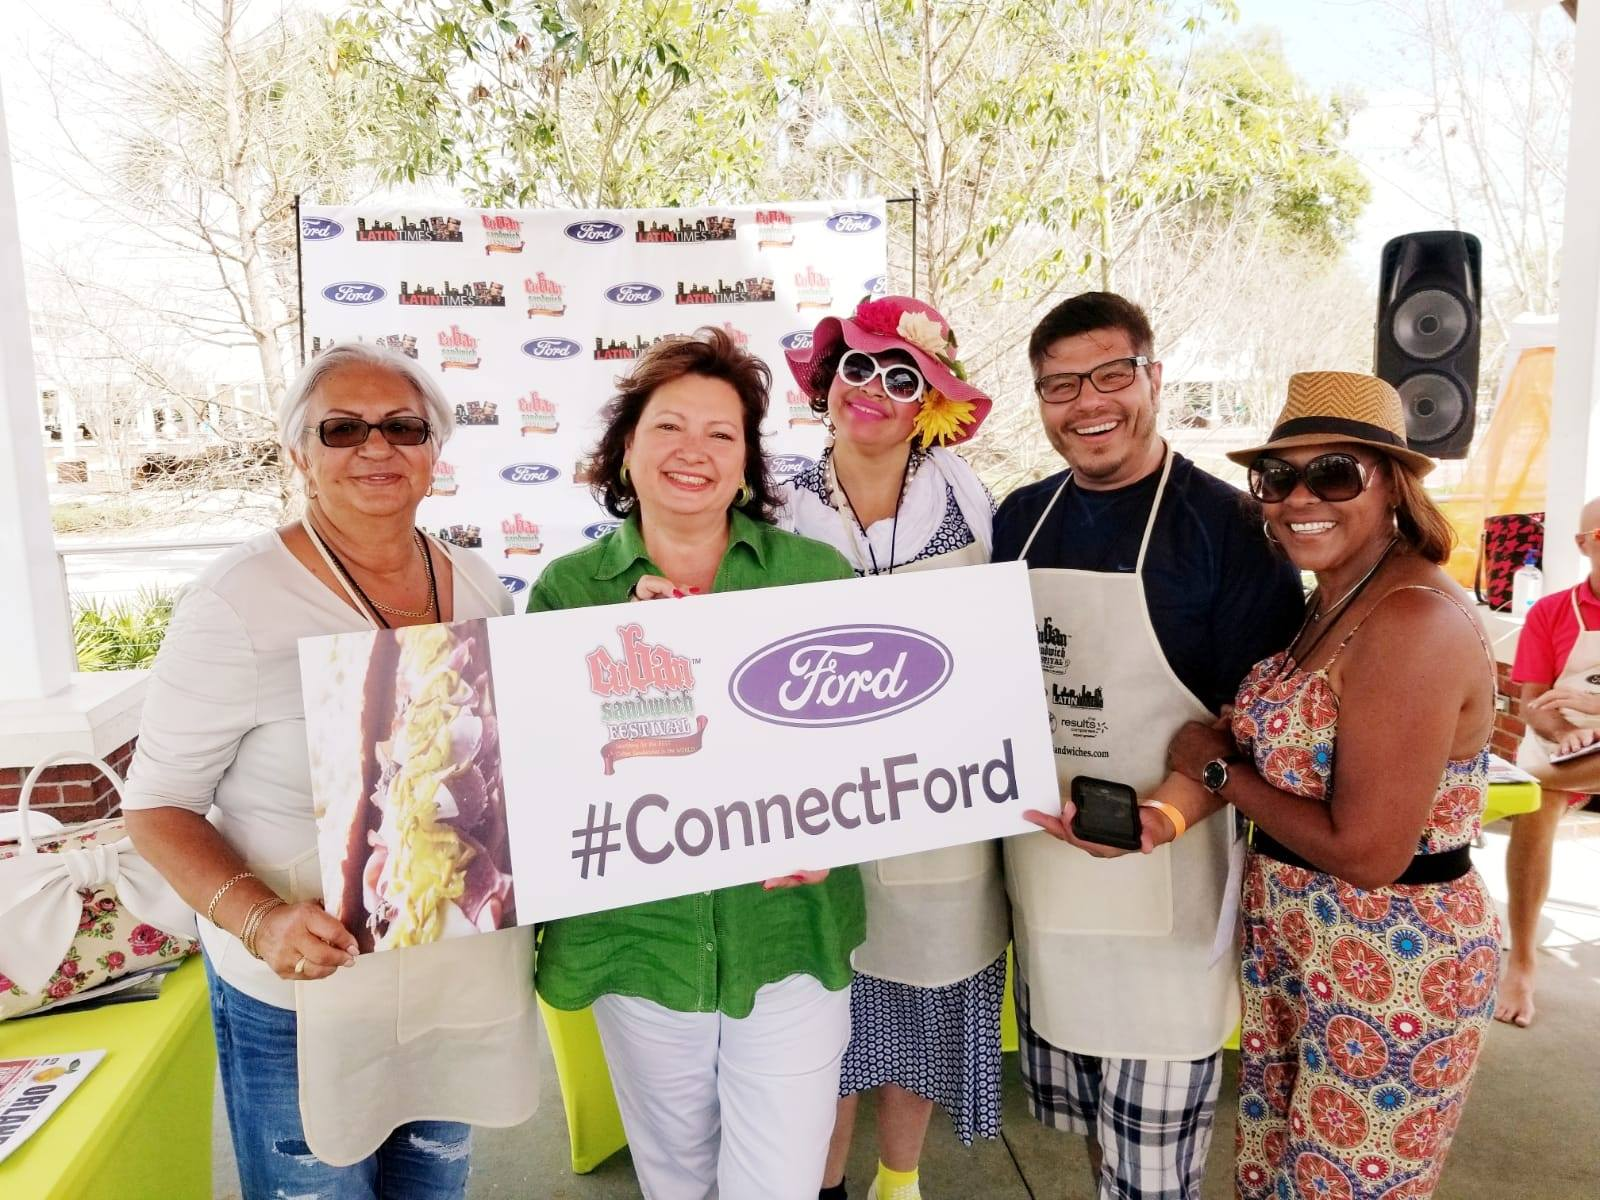 6th Annual FORD Cuban Sandwich Festival of Kissimmee & Orlando is on Saturday, August 21st, 2021!